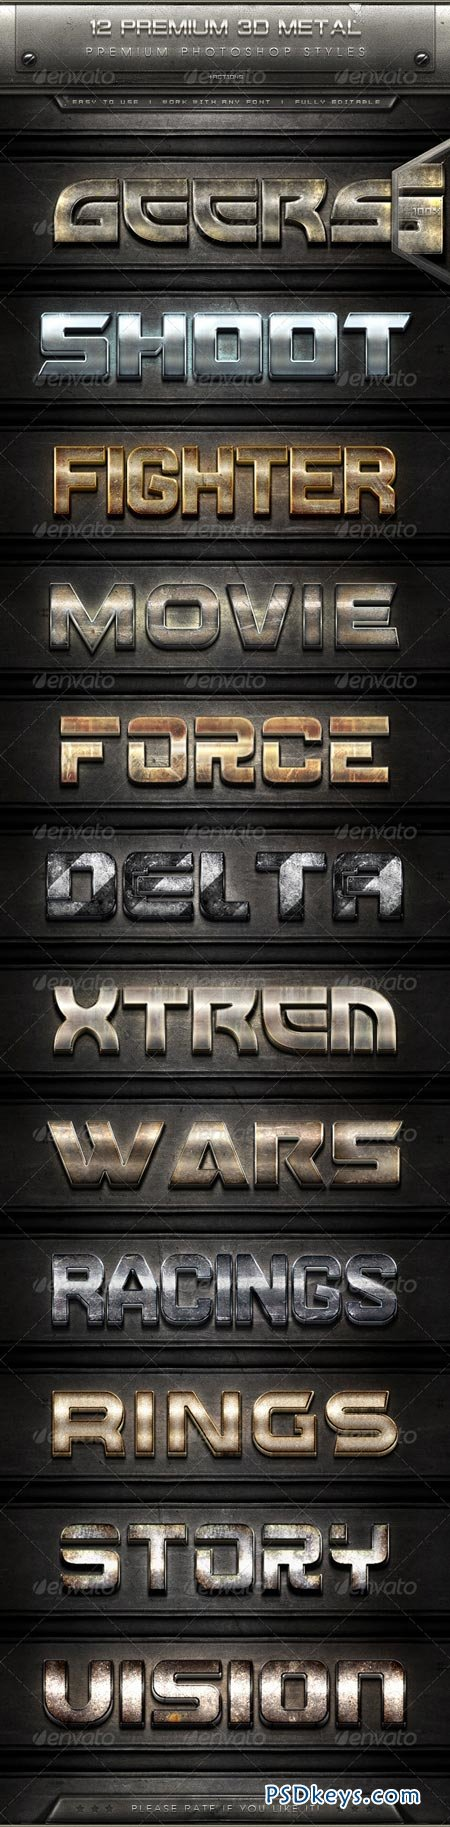 12 Premium 3D Metal Text Effect Styles + Actions 7911489